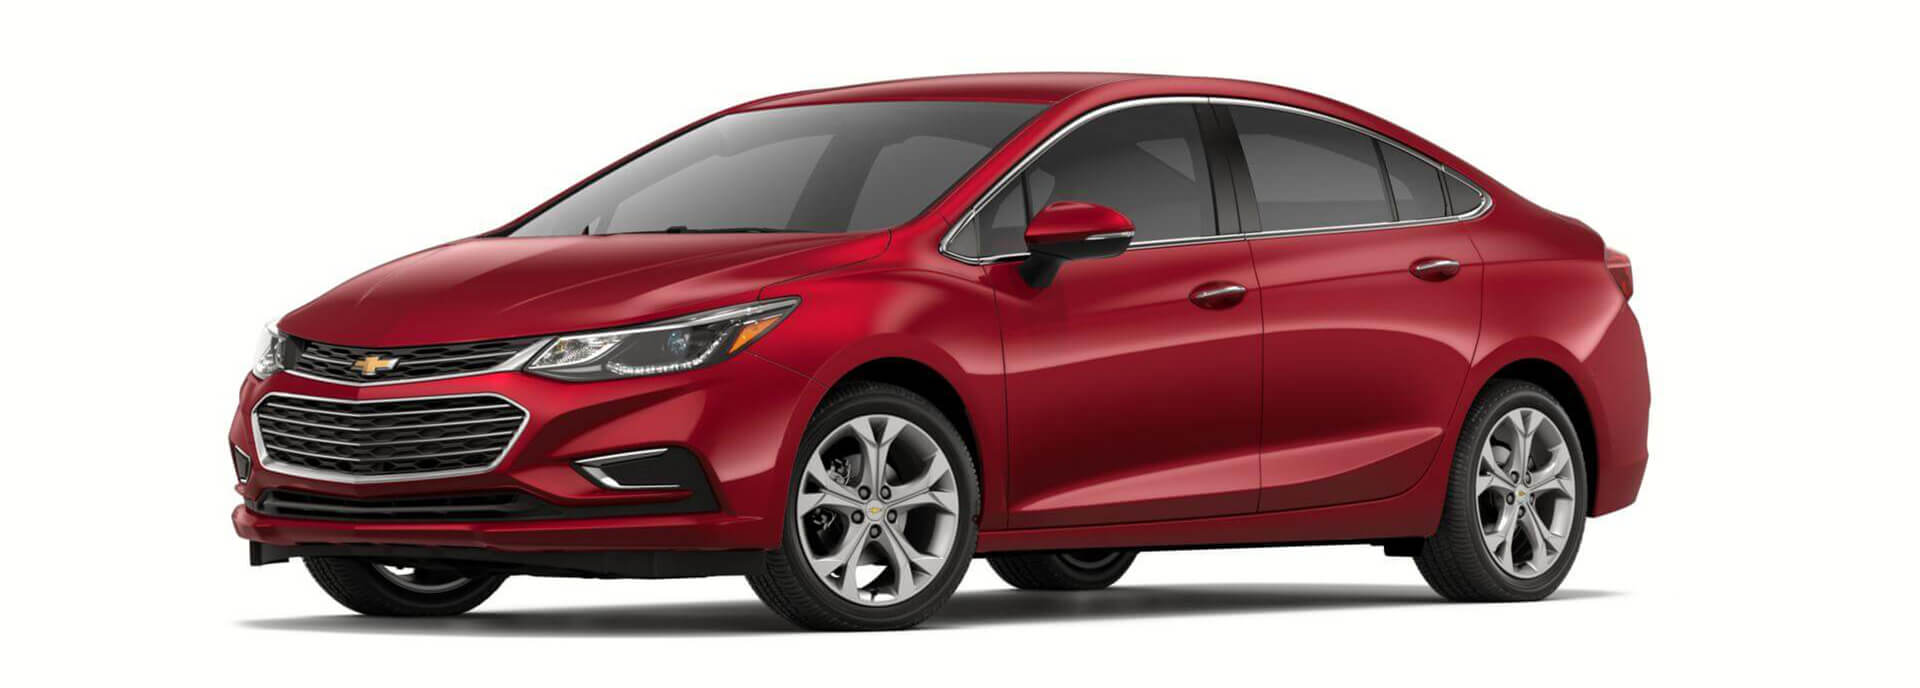 2018 Chevrolet Cruze Info Sunrise Chevrolet